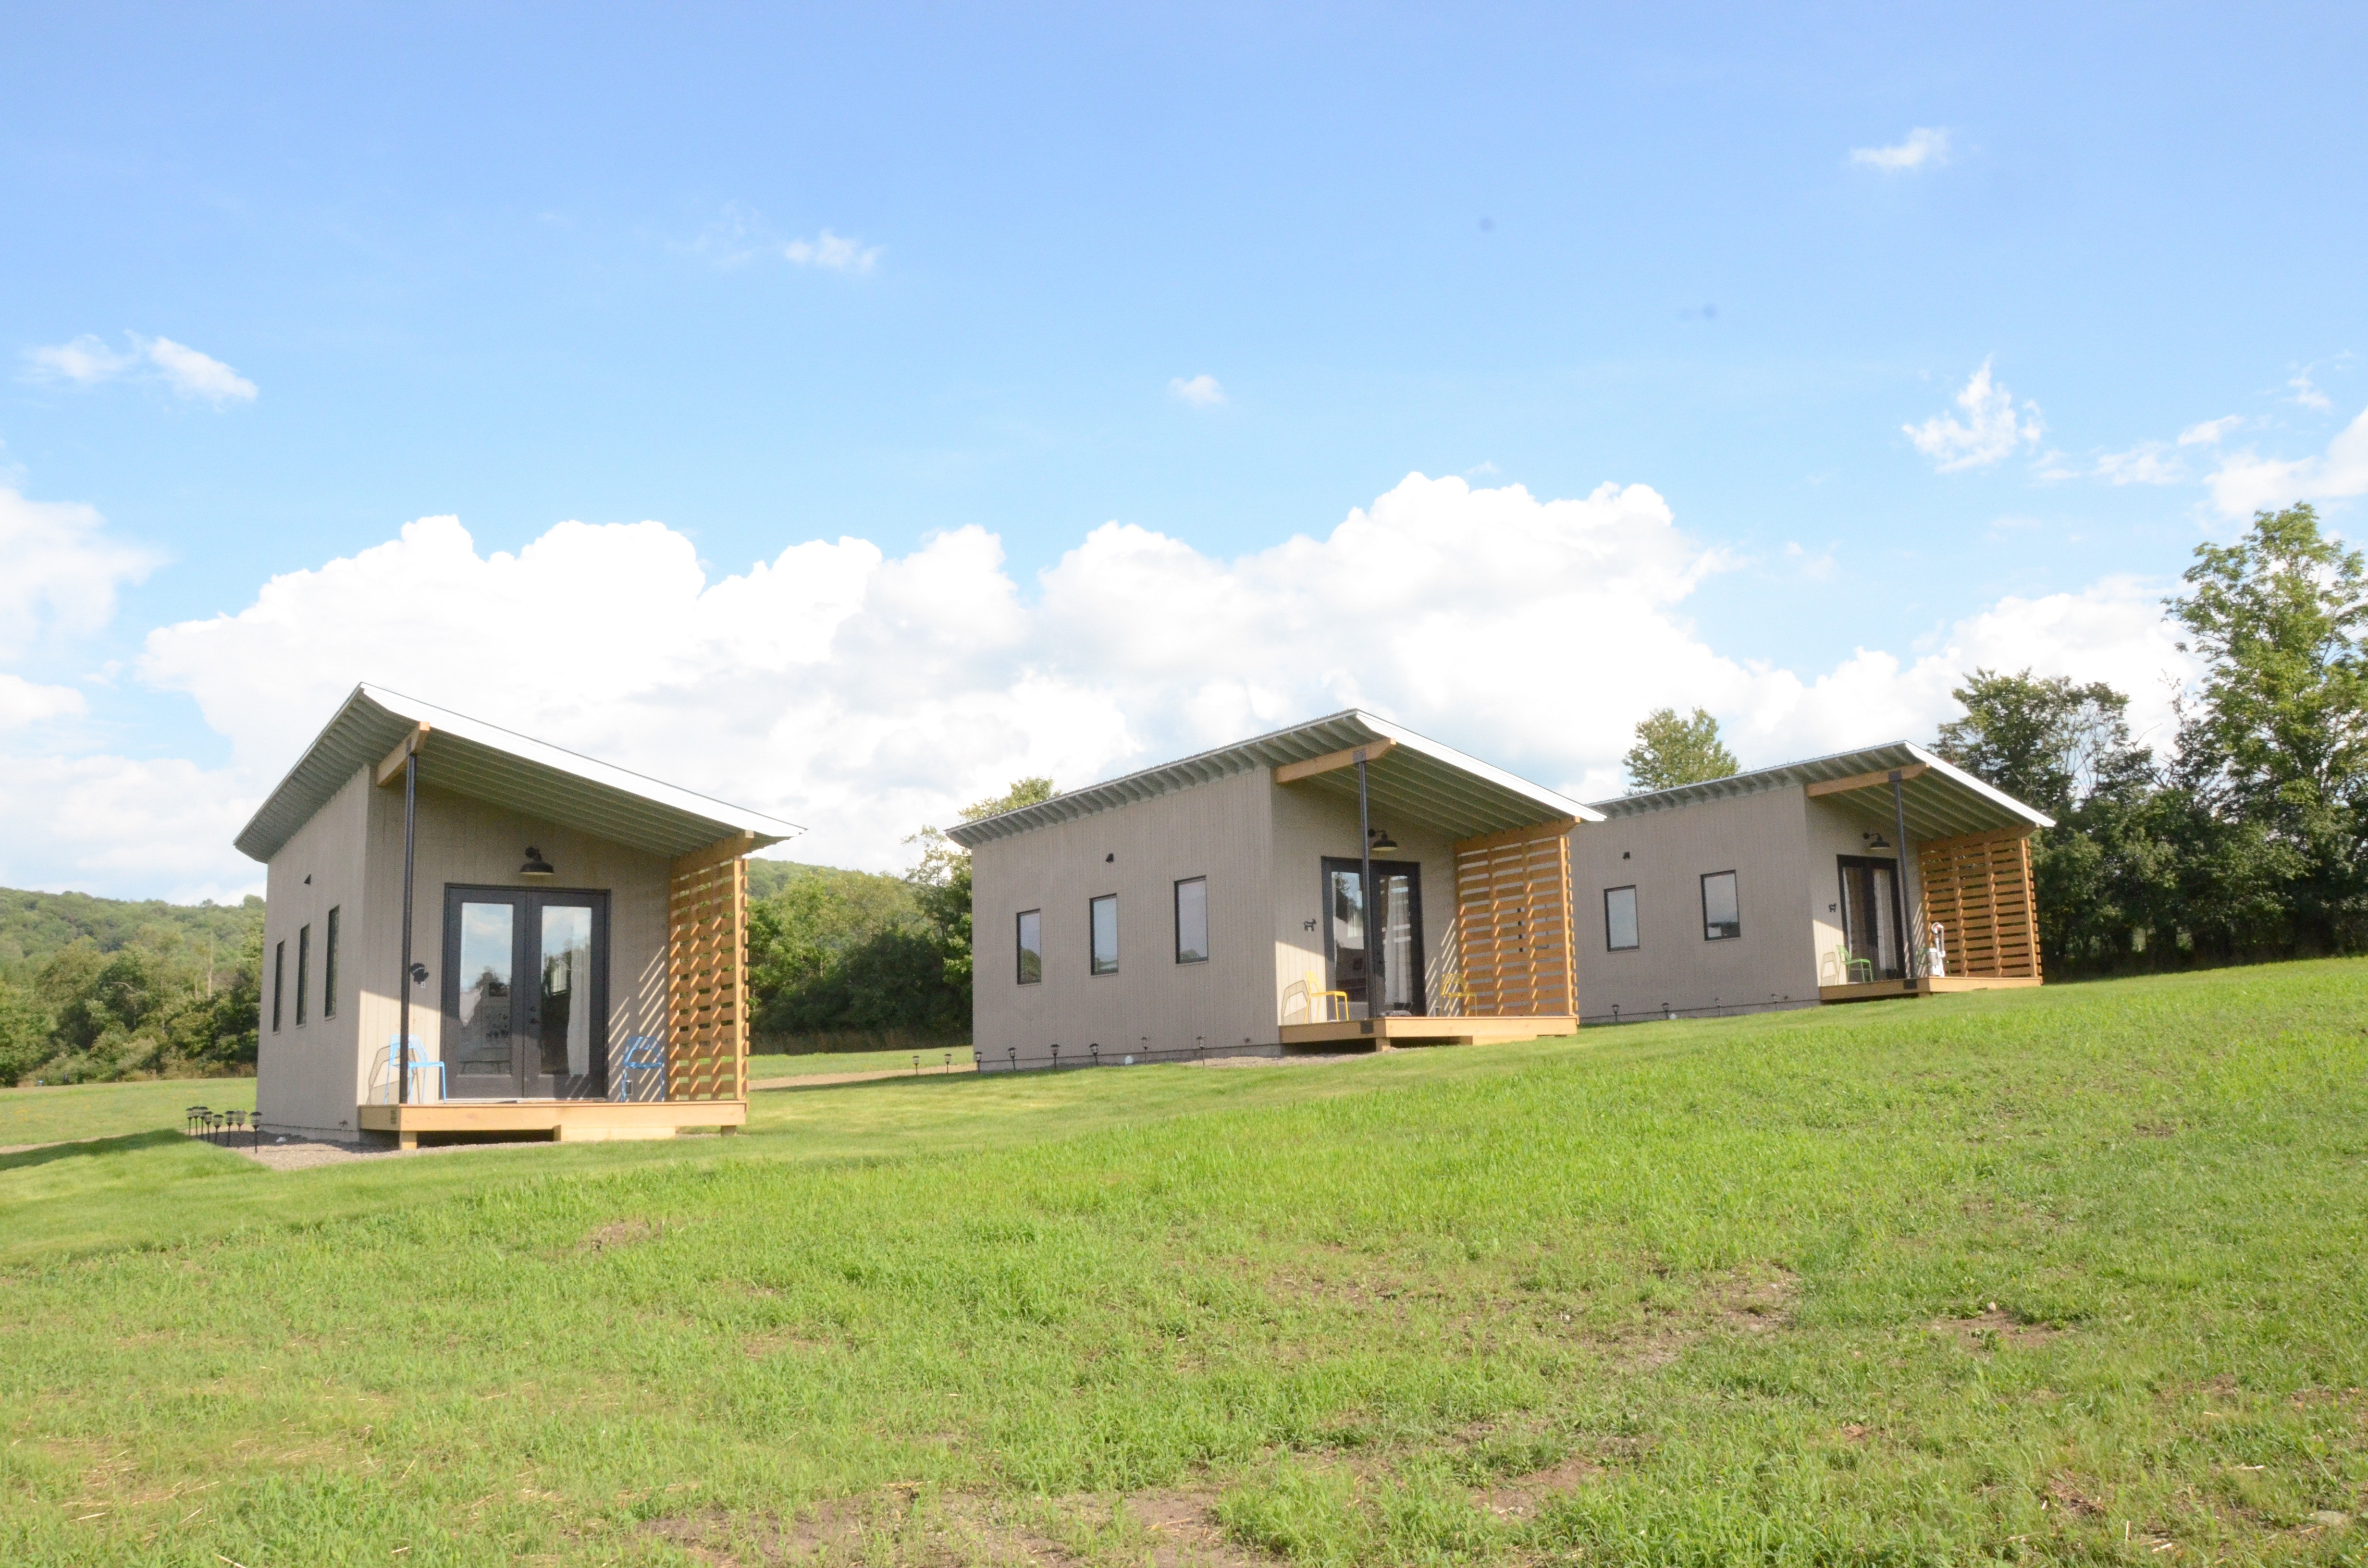 The Sanctuary's three tiny homes come complete with bathrooms, kitchens, and sweeping views.